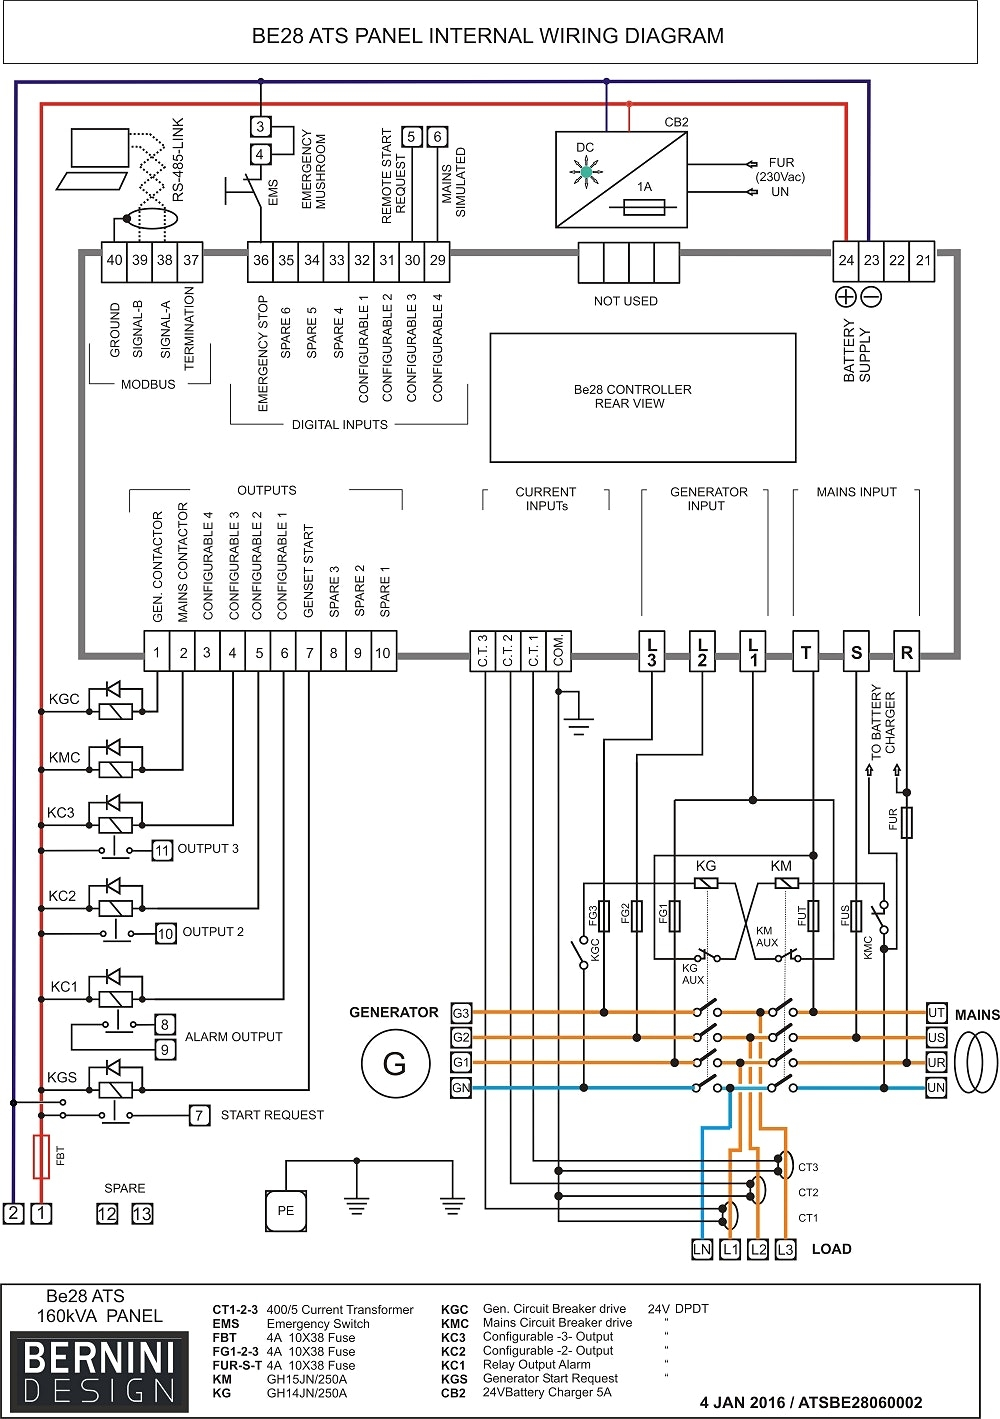 Diagram Access Control Wiring Diagram